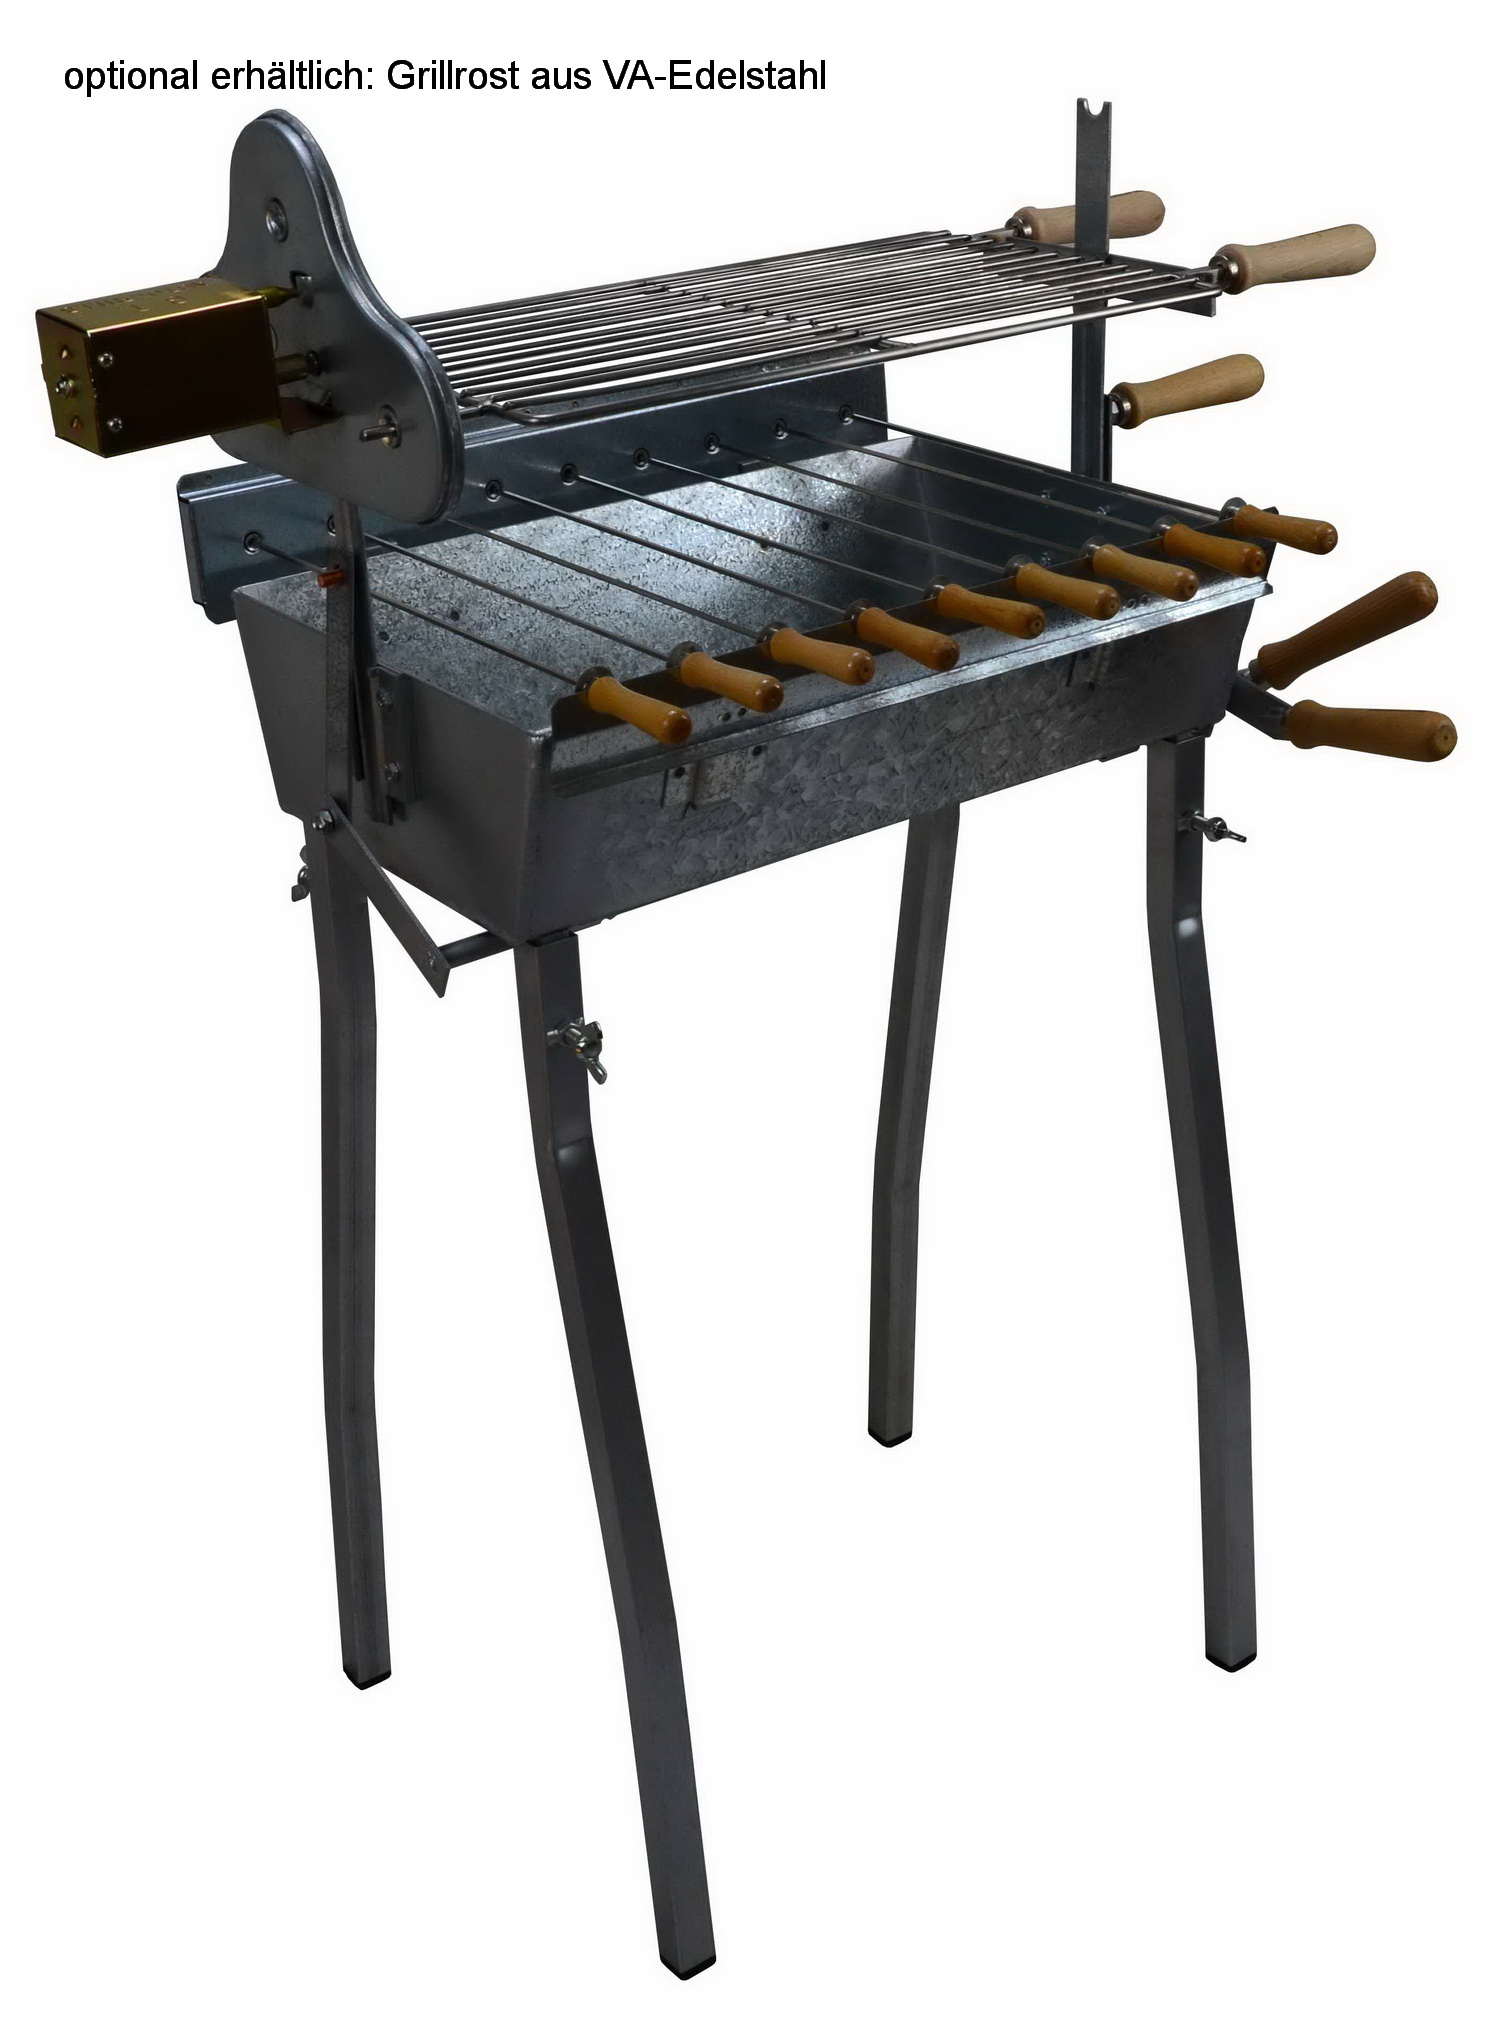 rotisserie barbecue grill churrasco 50 buy bbq grills online in germany spiess. Black Bedroom Furniture Sets. Home Design Ideas